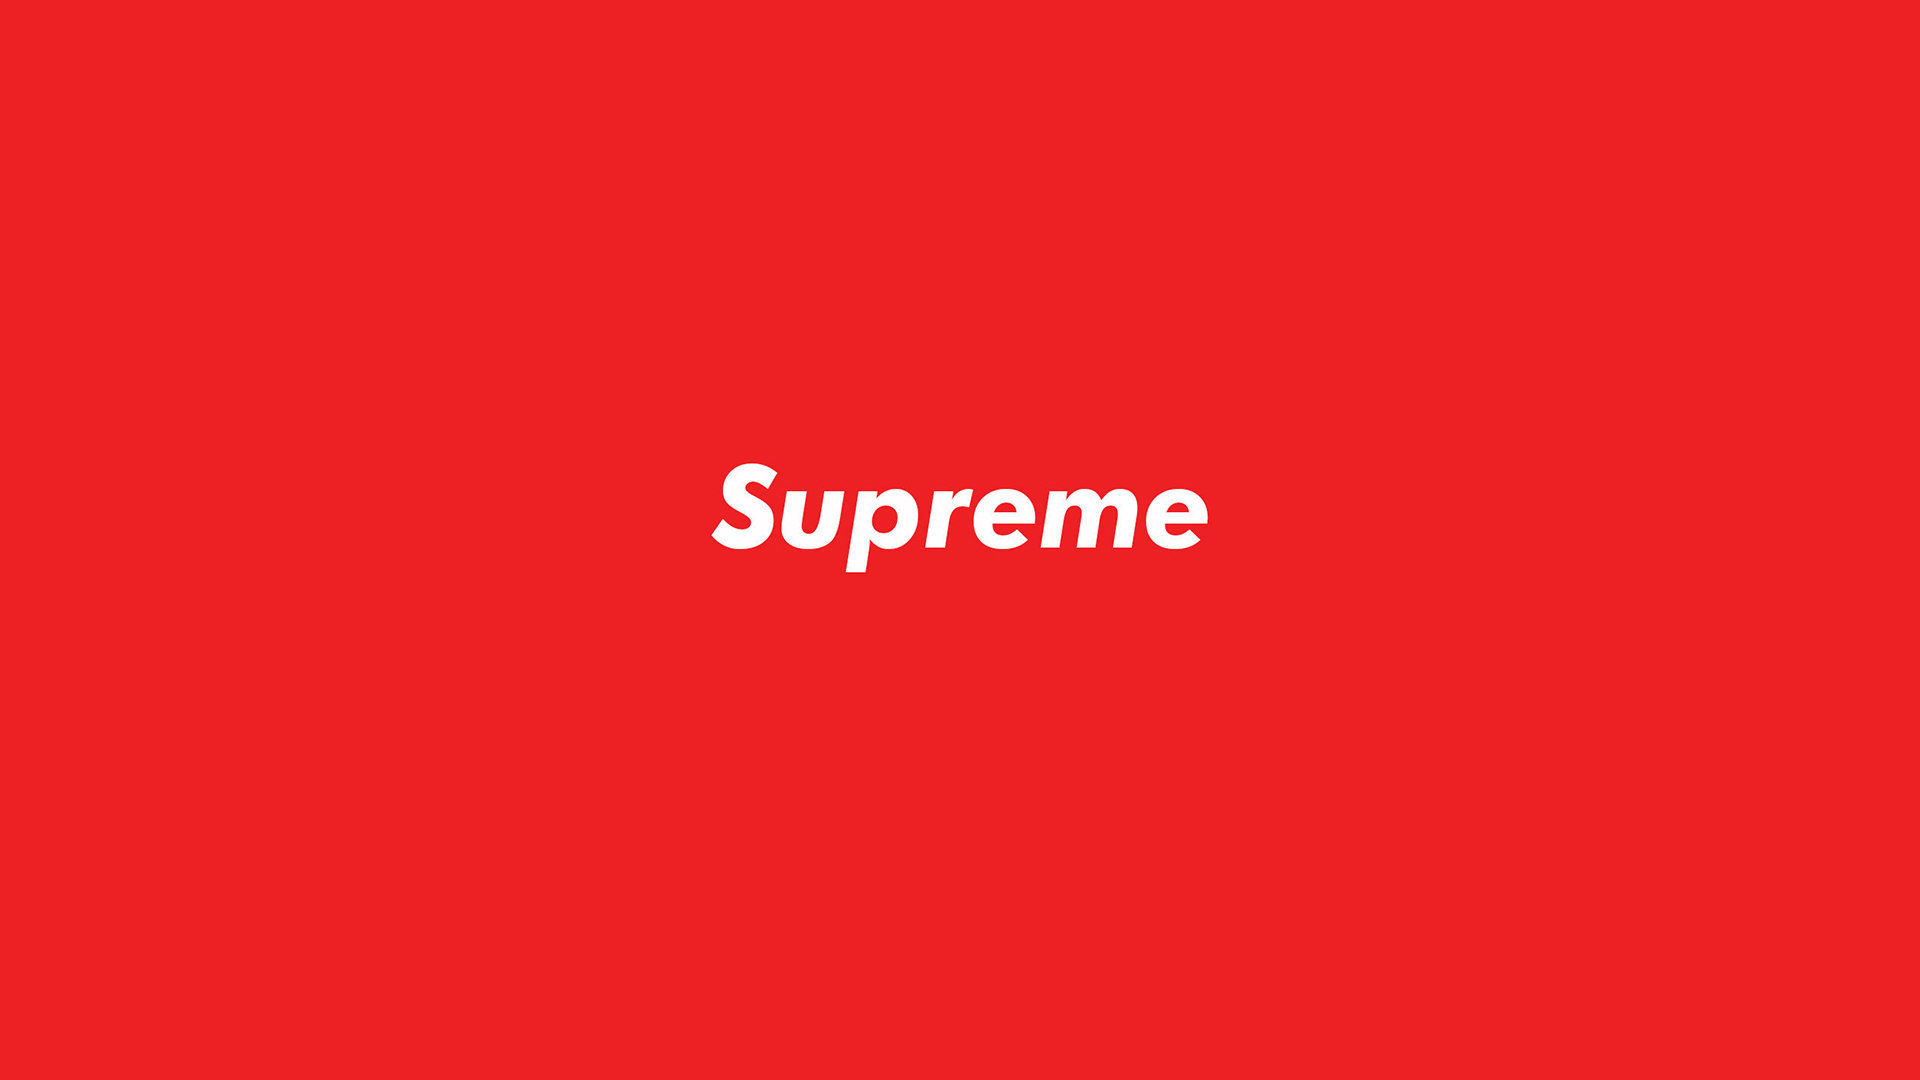 Supreme Red Wallpaper   AuthenticSupremecom 1920x1080